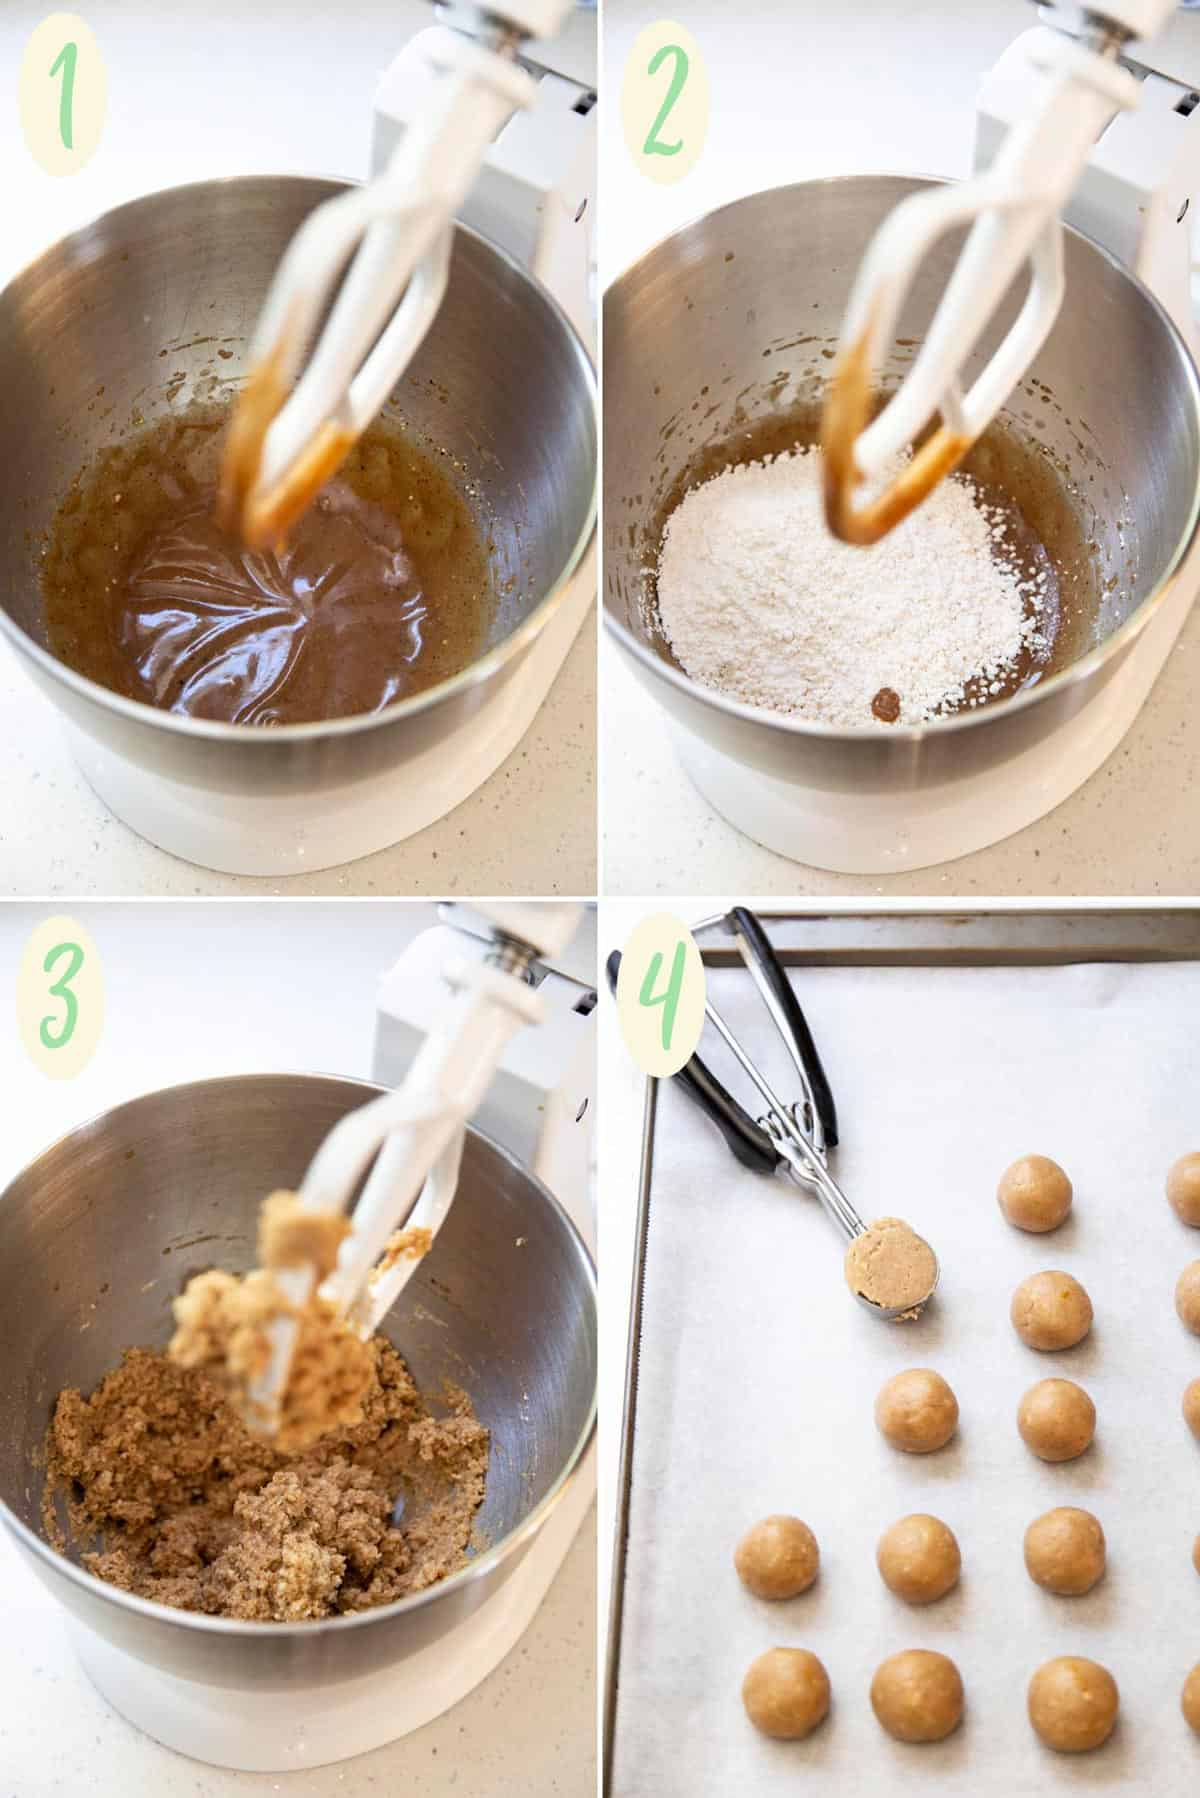 Collage of 4 photos showing how to make snowball cookie dough